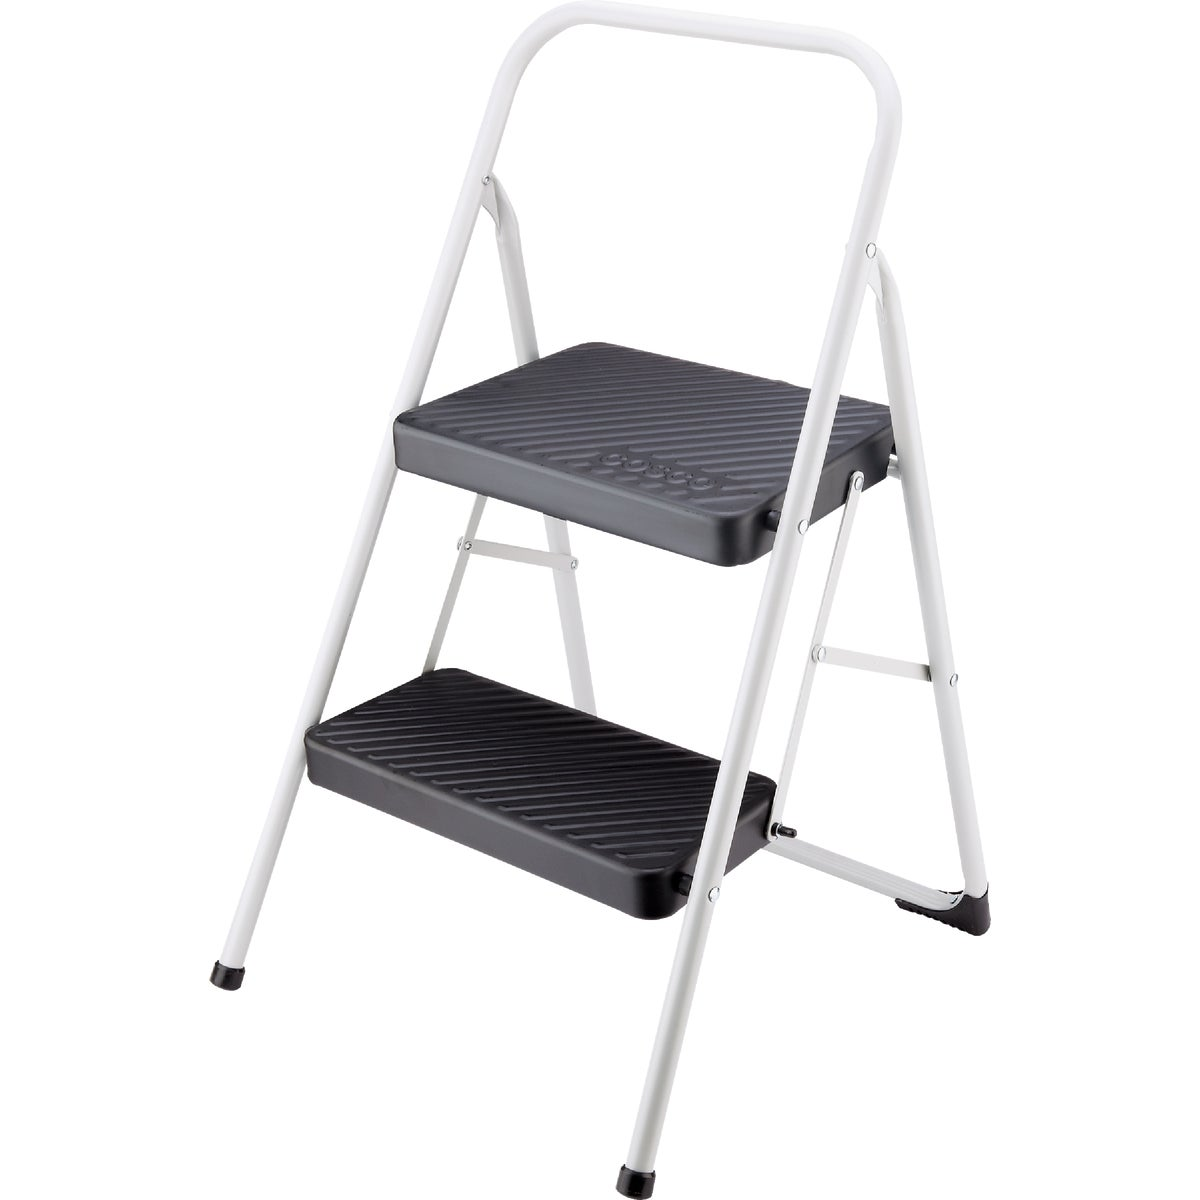 FOLDING STEP STOOL - 11-135CLGG4 by Cosco Import